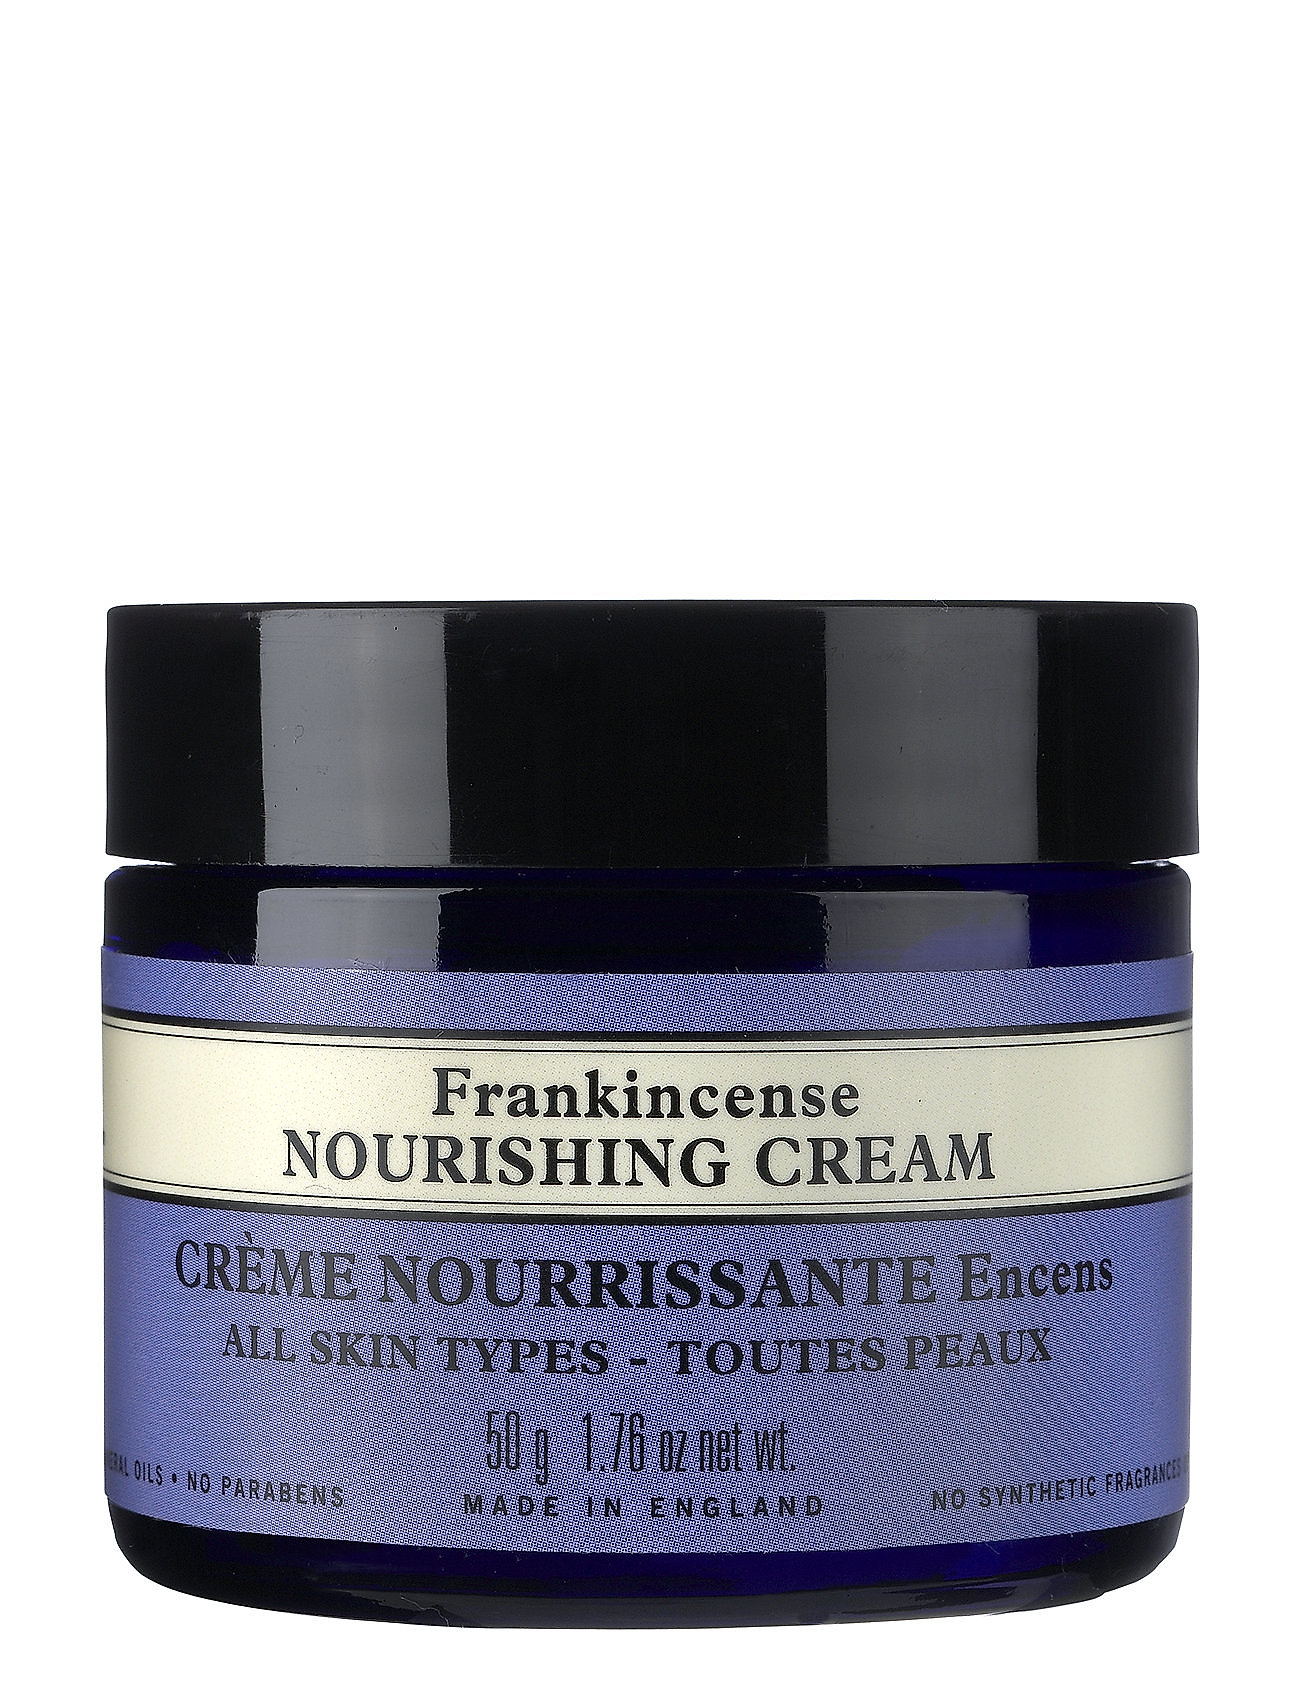 Image of Frankincense Nourishing Cream Beauty WOMEN Skin Care Face Day Creams Nude Neal's Yard Remedies (3342686611)